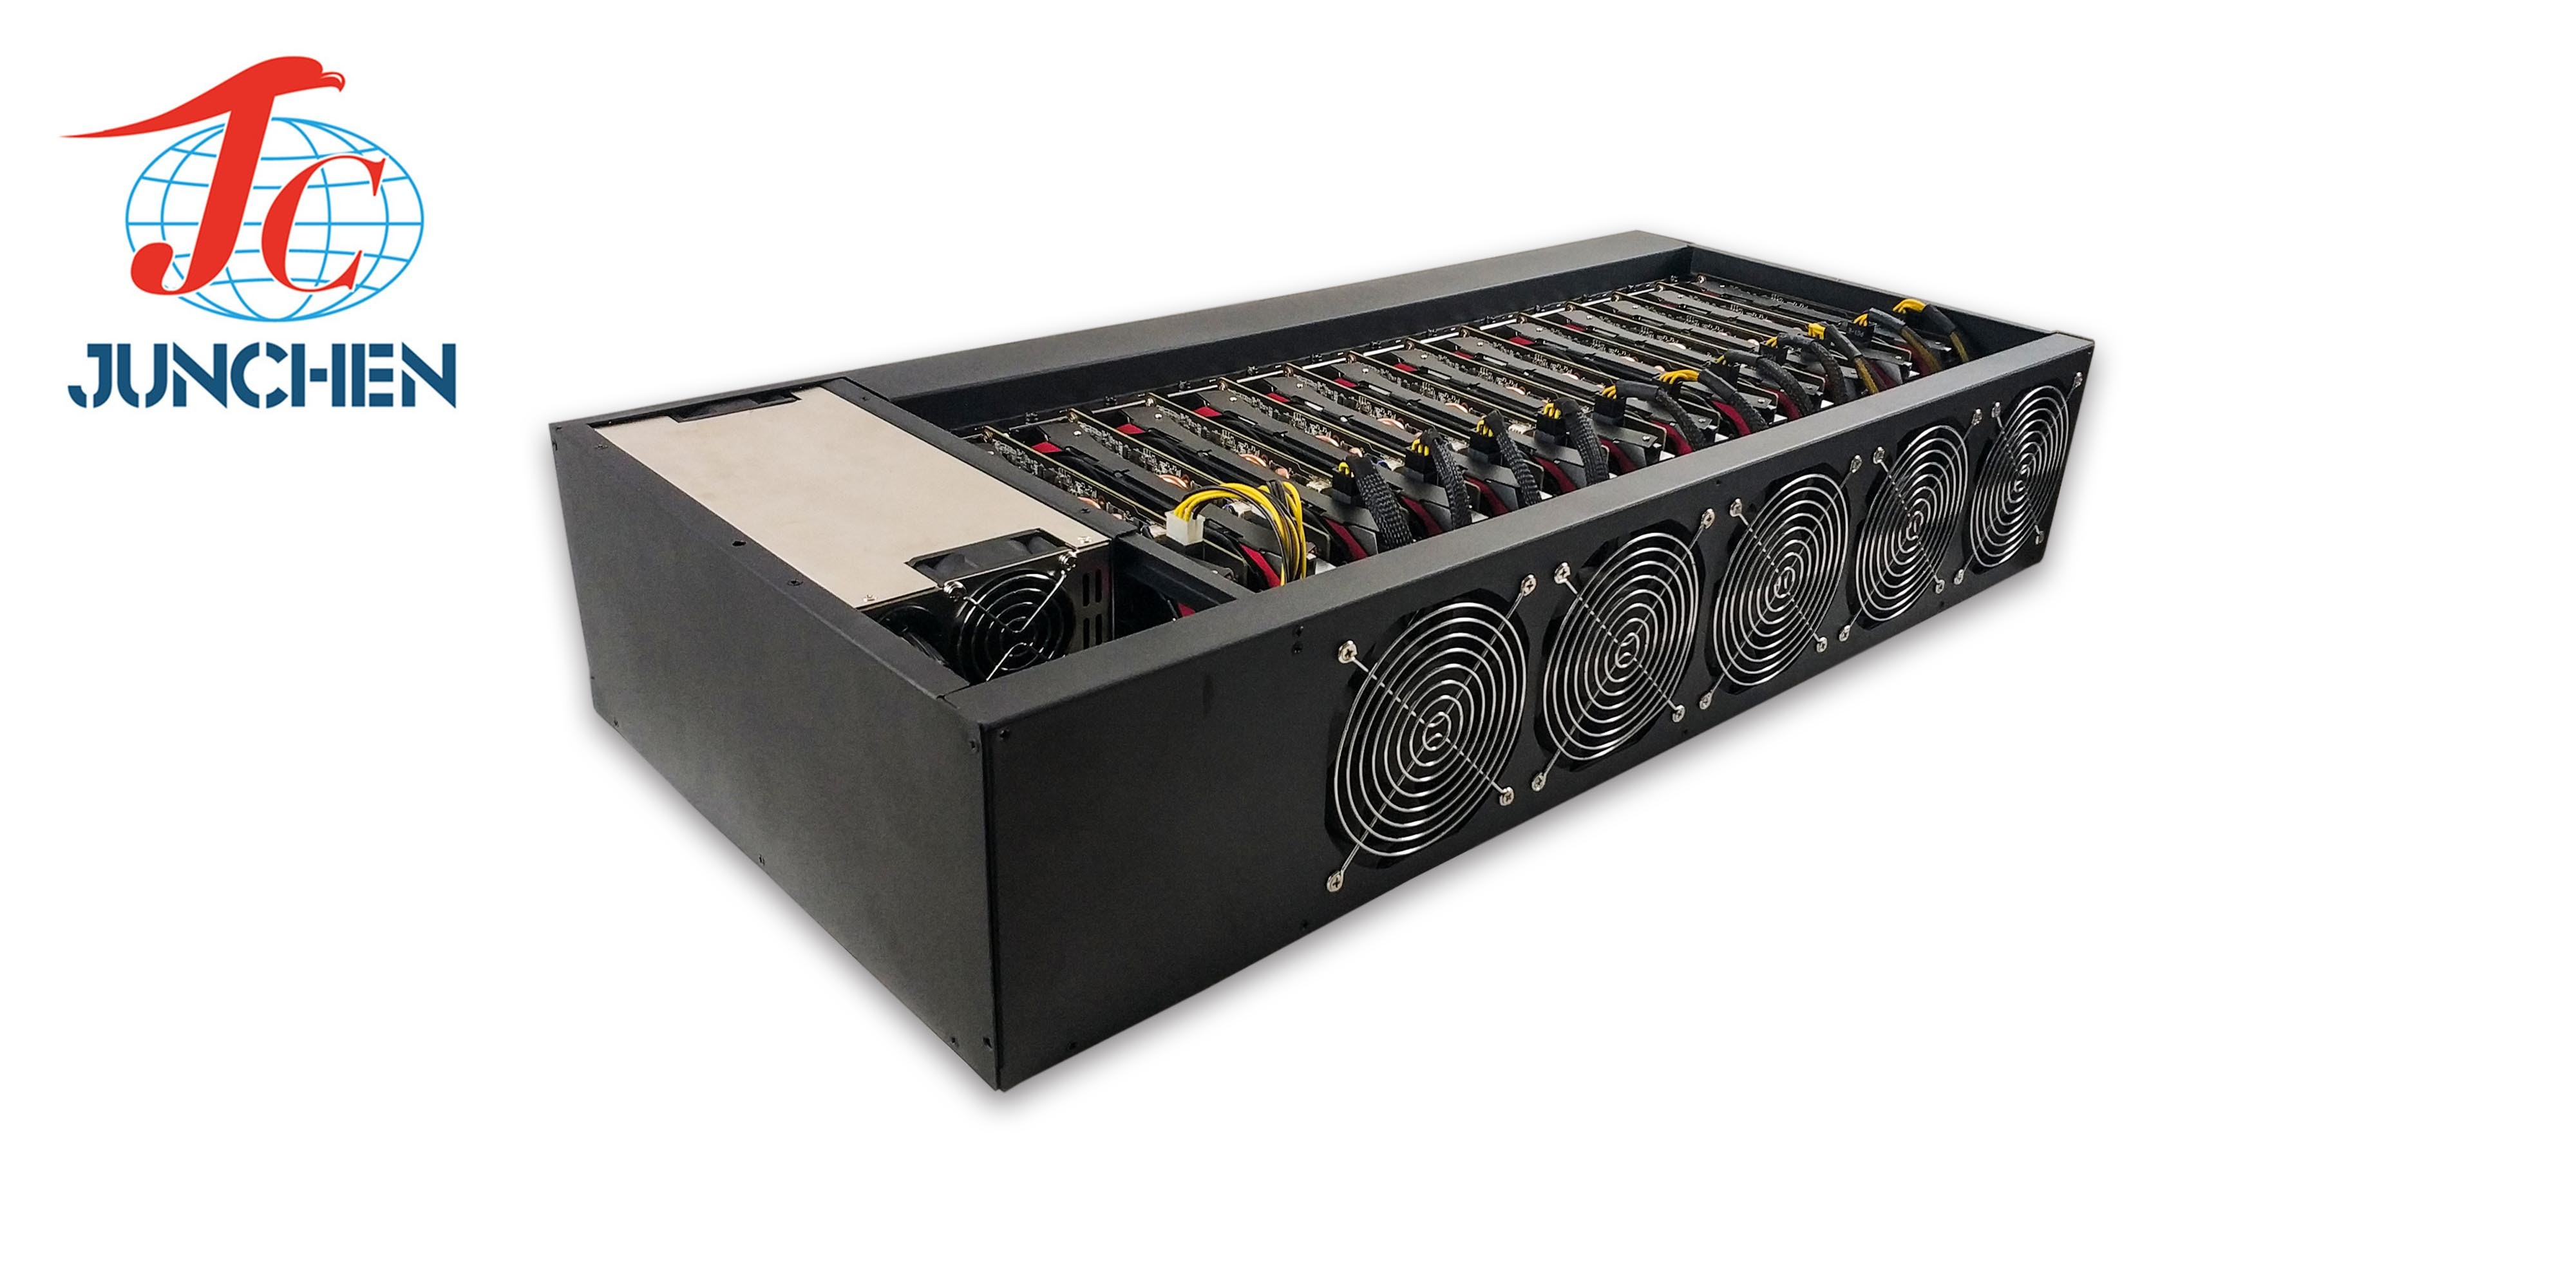 [Hot Item] CPU Miner 2018 Mining Chassis Graphics Card Support 12GPU  Bitcoin Case Mining Rig